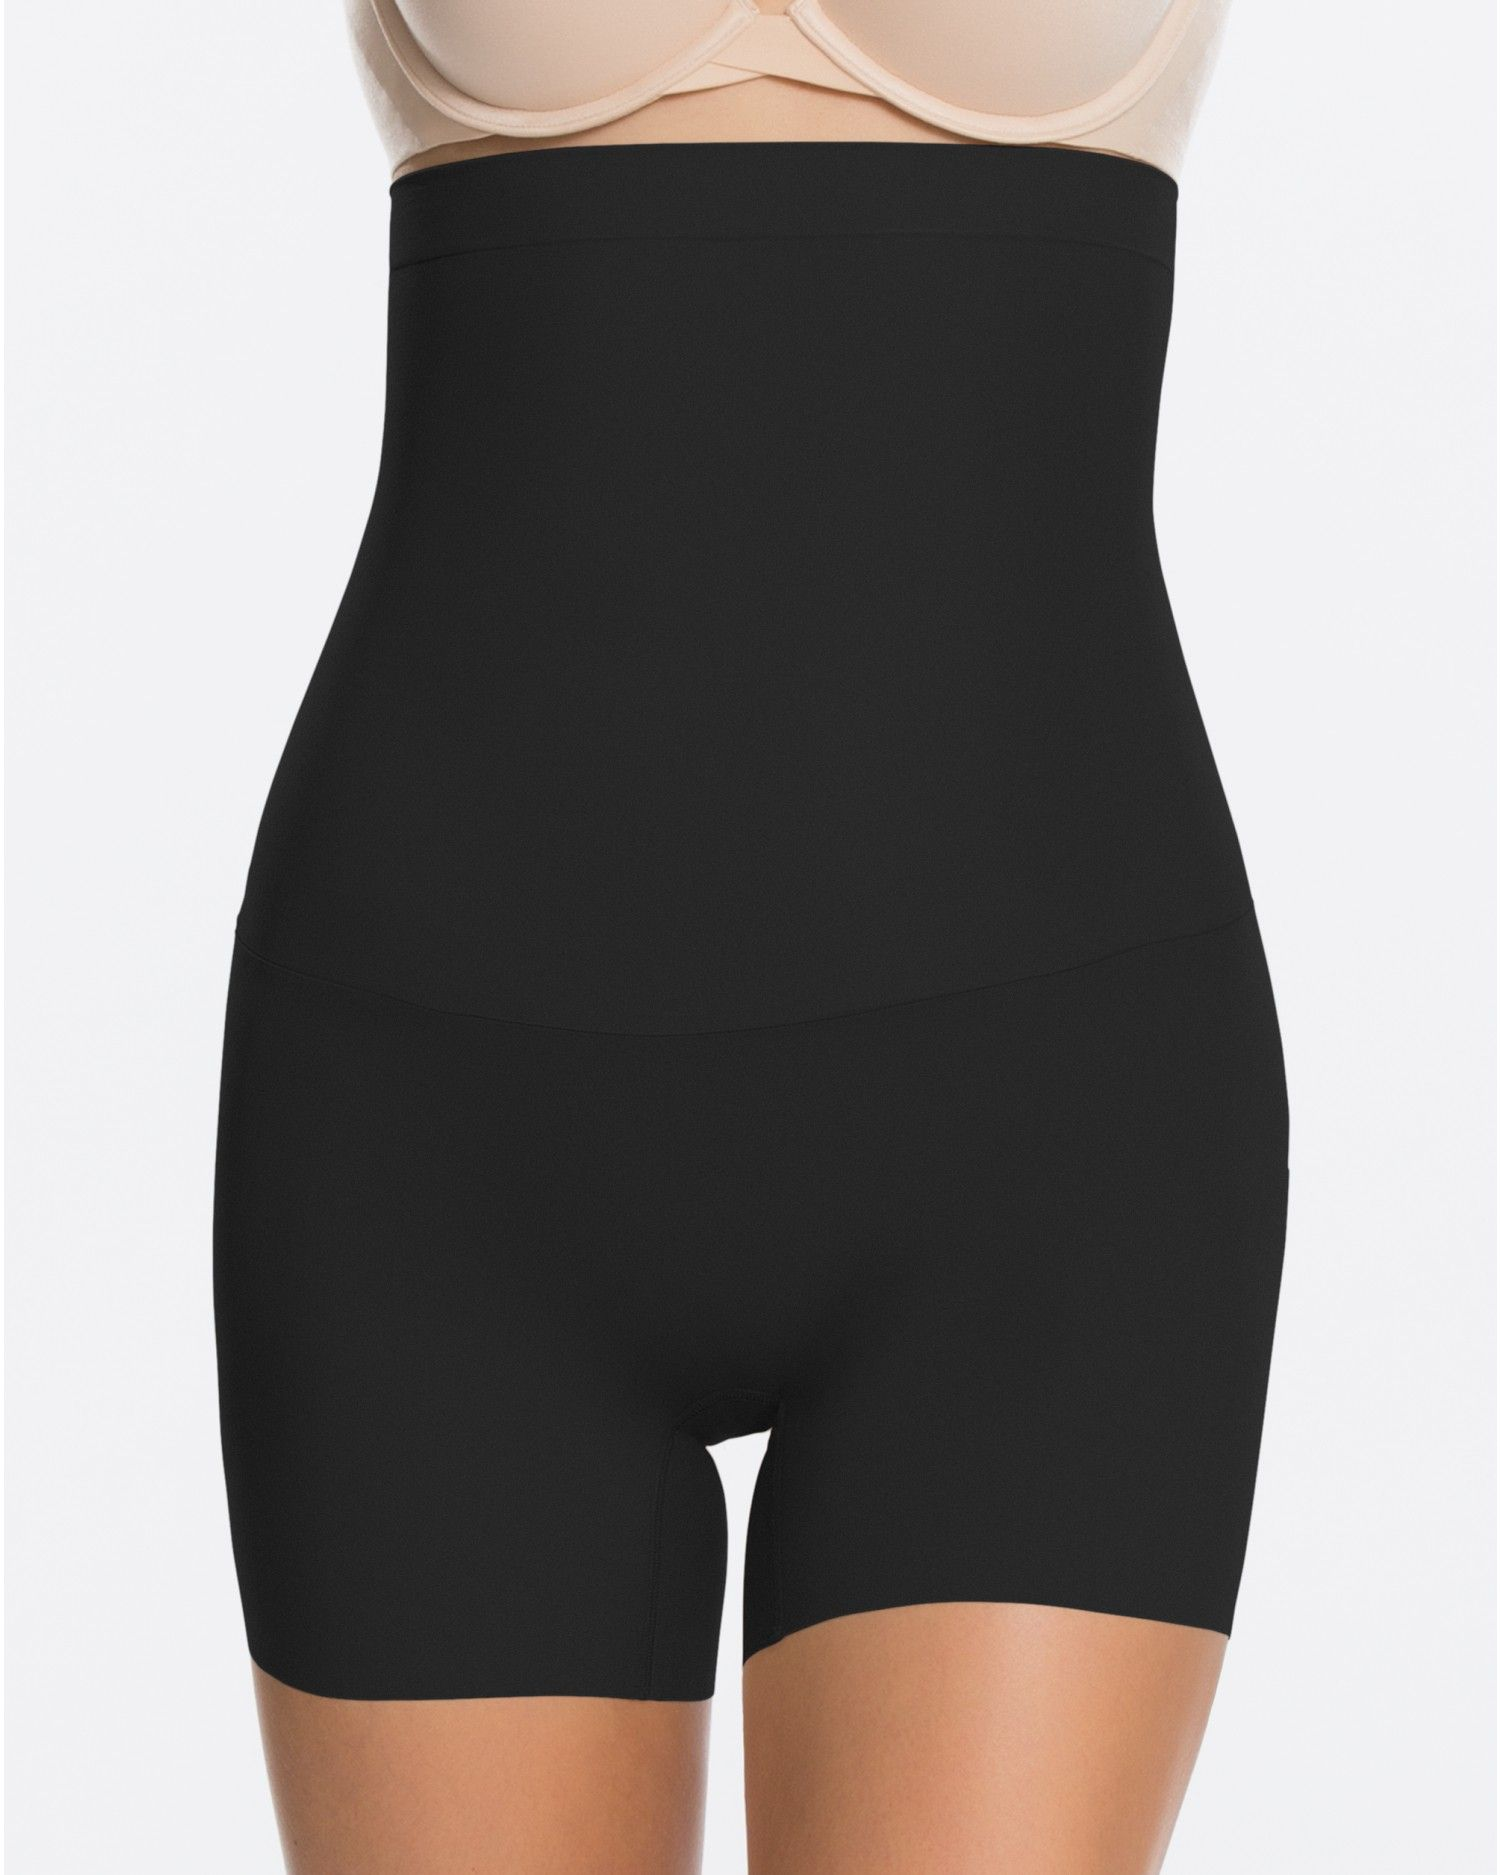 Spanx Shape My Day High-Waisted Girl Short SS7215 | MYER